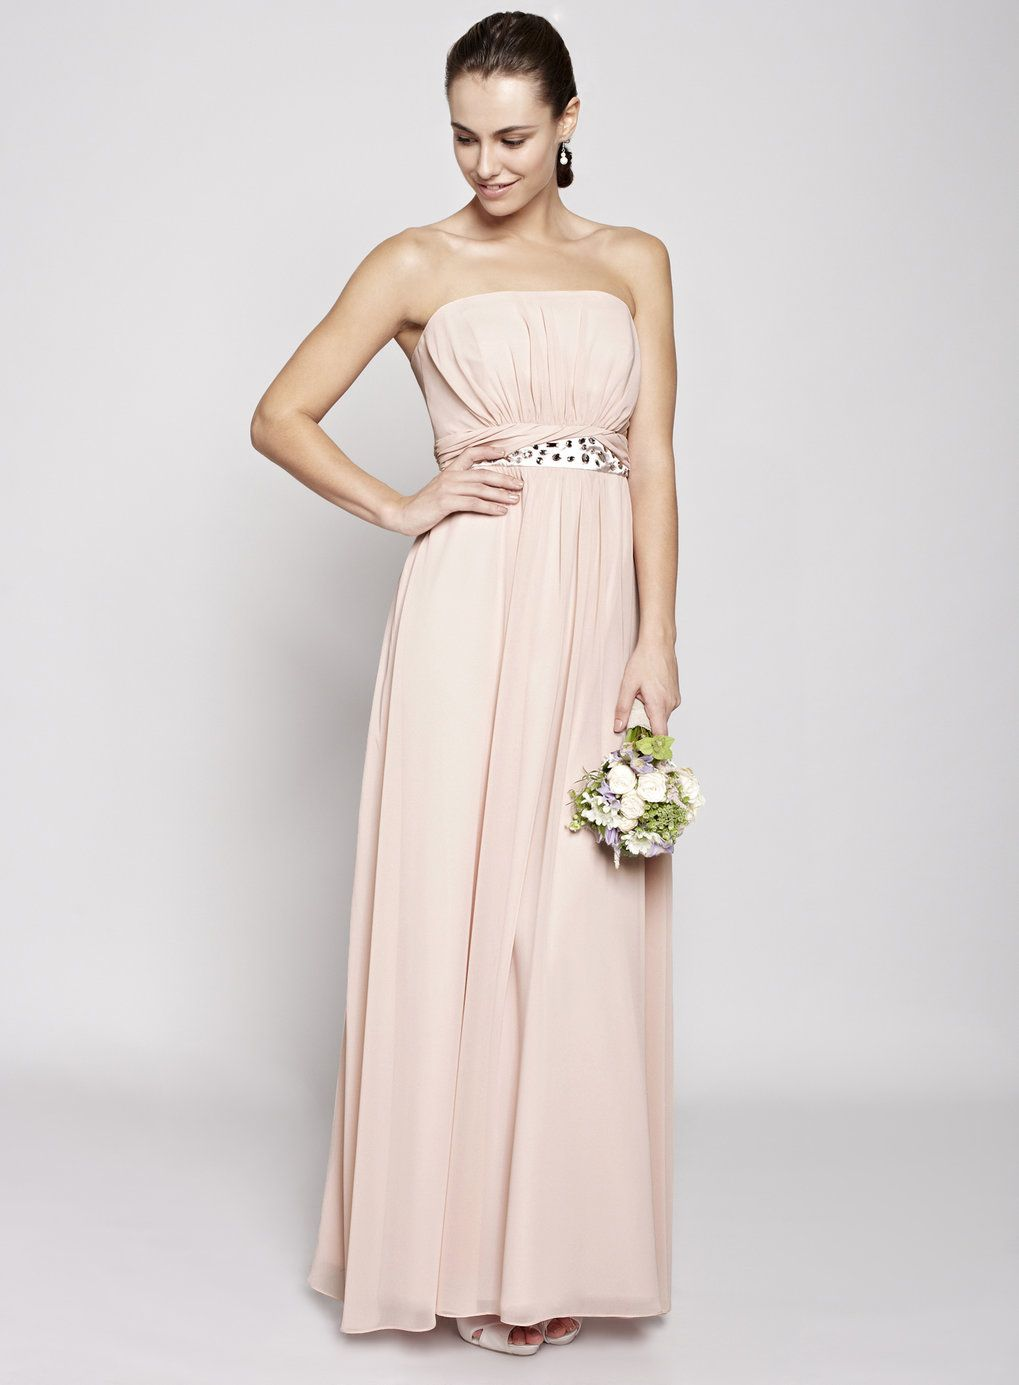 Blush daisy long bridesmaid dress dresses pinterest long blush daisy long bridesmaid dress ombrellifo Images